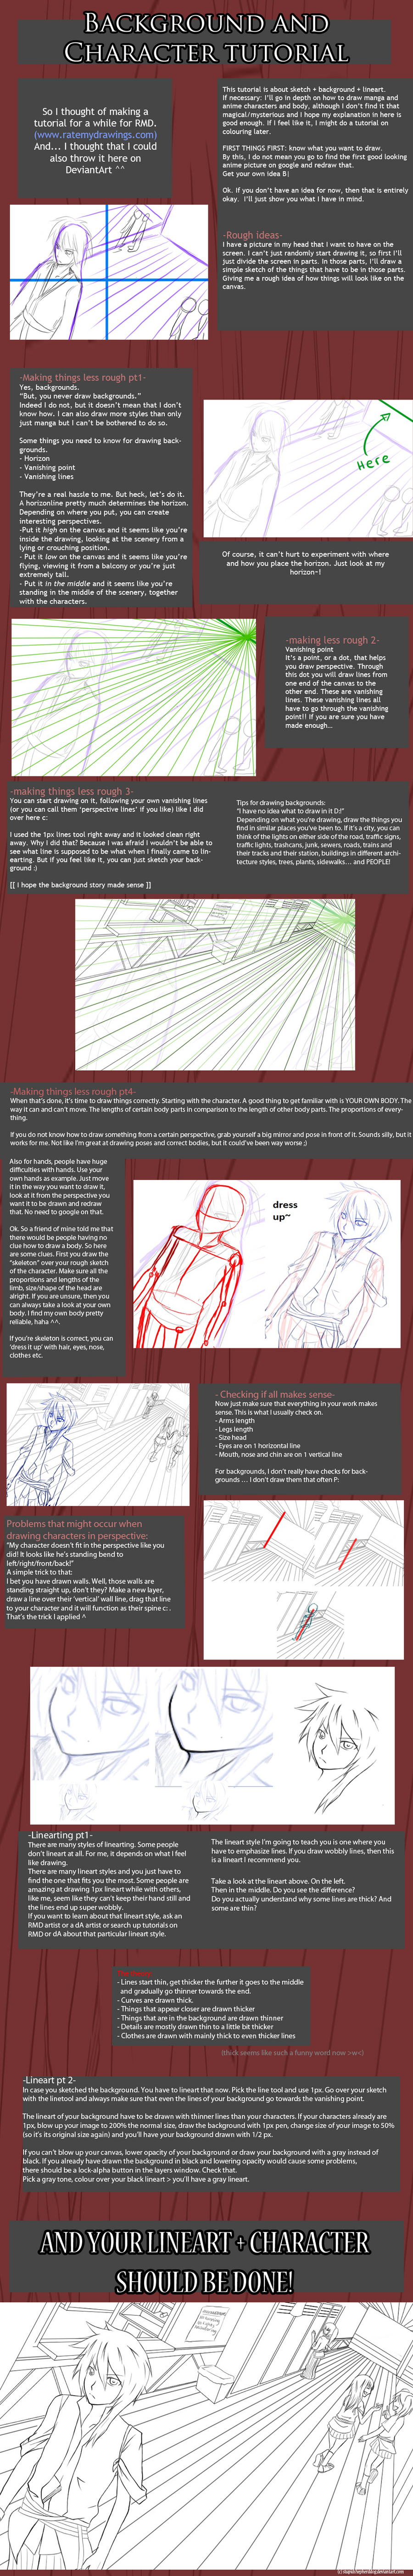 http://fc00.deviantart.net/fs71/i/2012/329/3/f/tutorial__background_and_characters_by_stupidshepherddog-d5m3eui.png